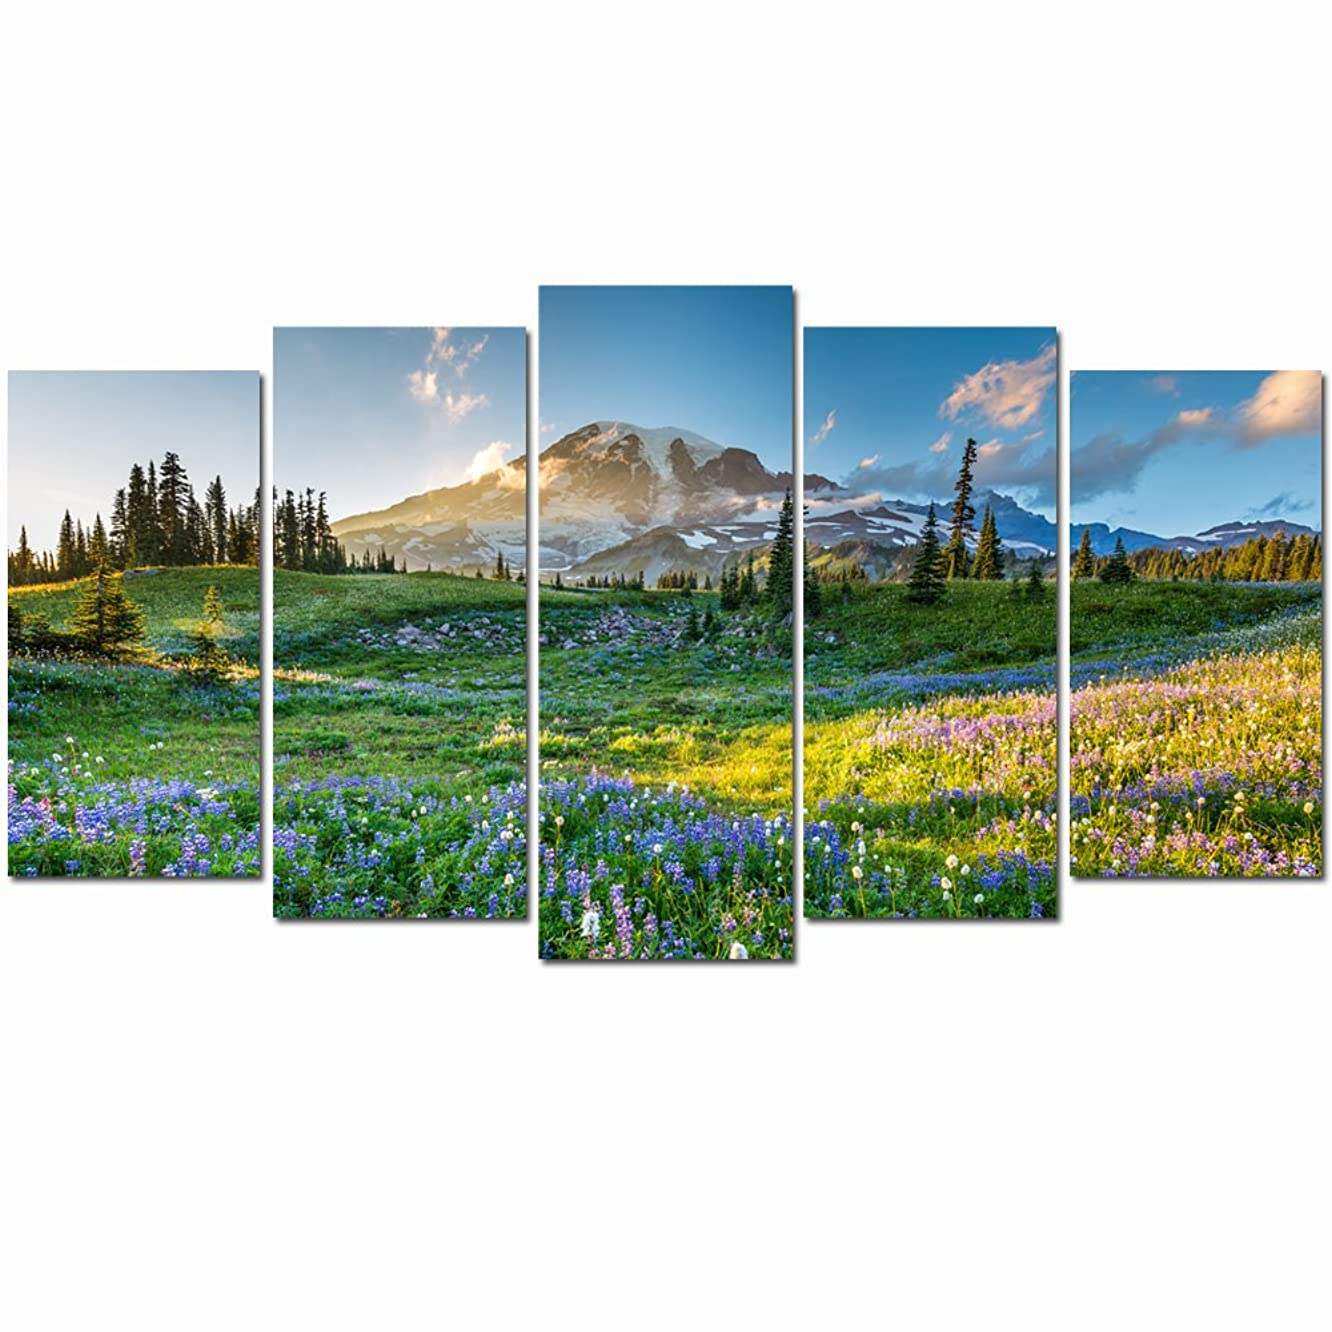 LevvArts - 5 Piece Canvas Prints Wall Art National Park Poster Mount Rainier at Sunrise Landscape Painting Giclee Print Framed Ready to Hang Modern Bedroom Home Decor